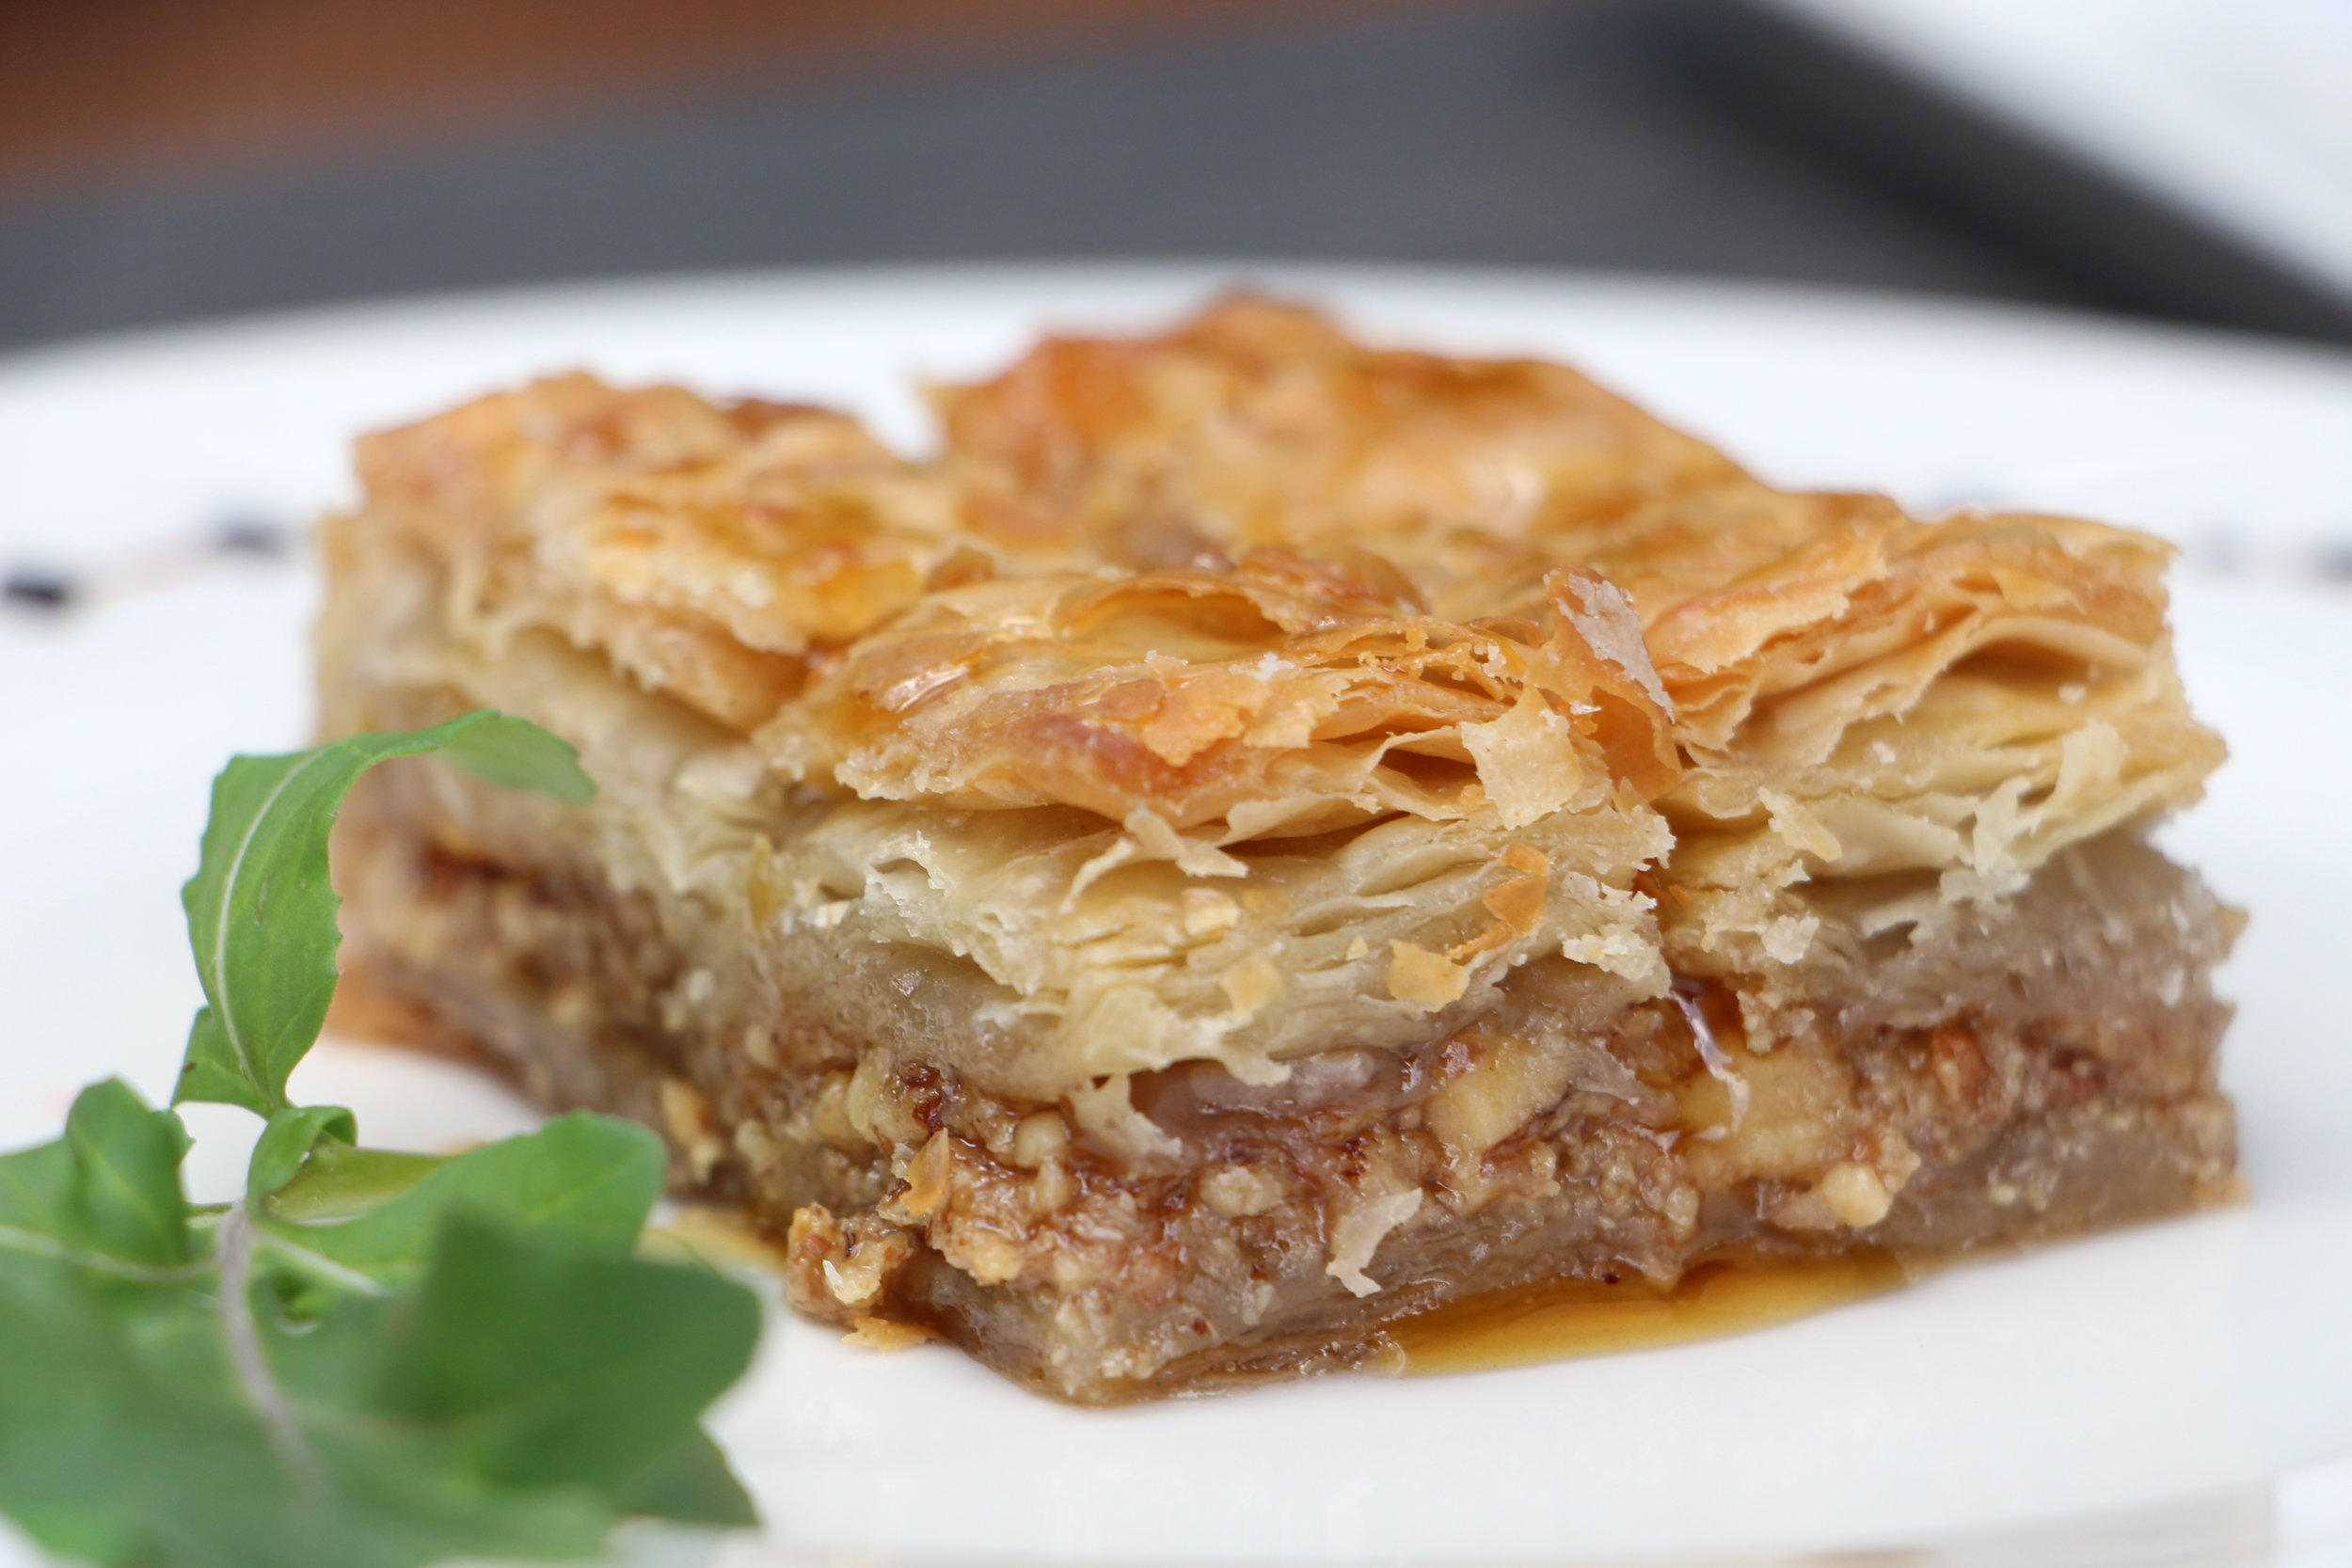 Get transported to the Middle East with this rich, sweet pastry made of layered filo filled with chopped nuts and sweetened and held together with syrup or honey.